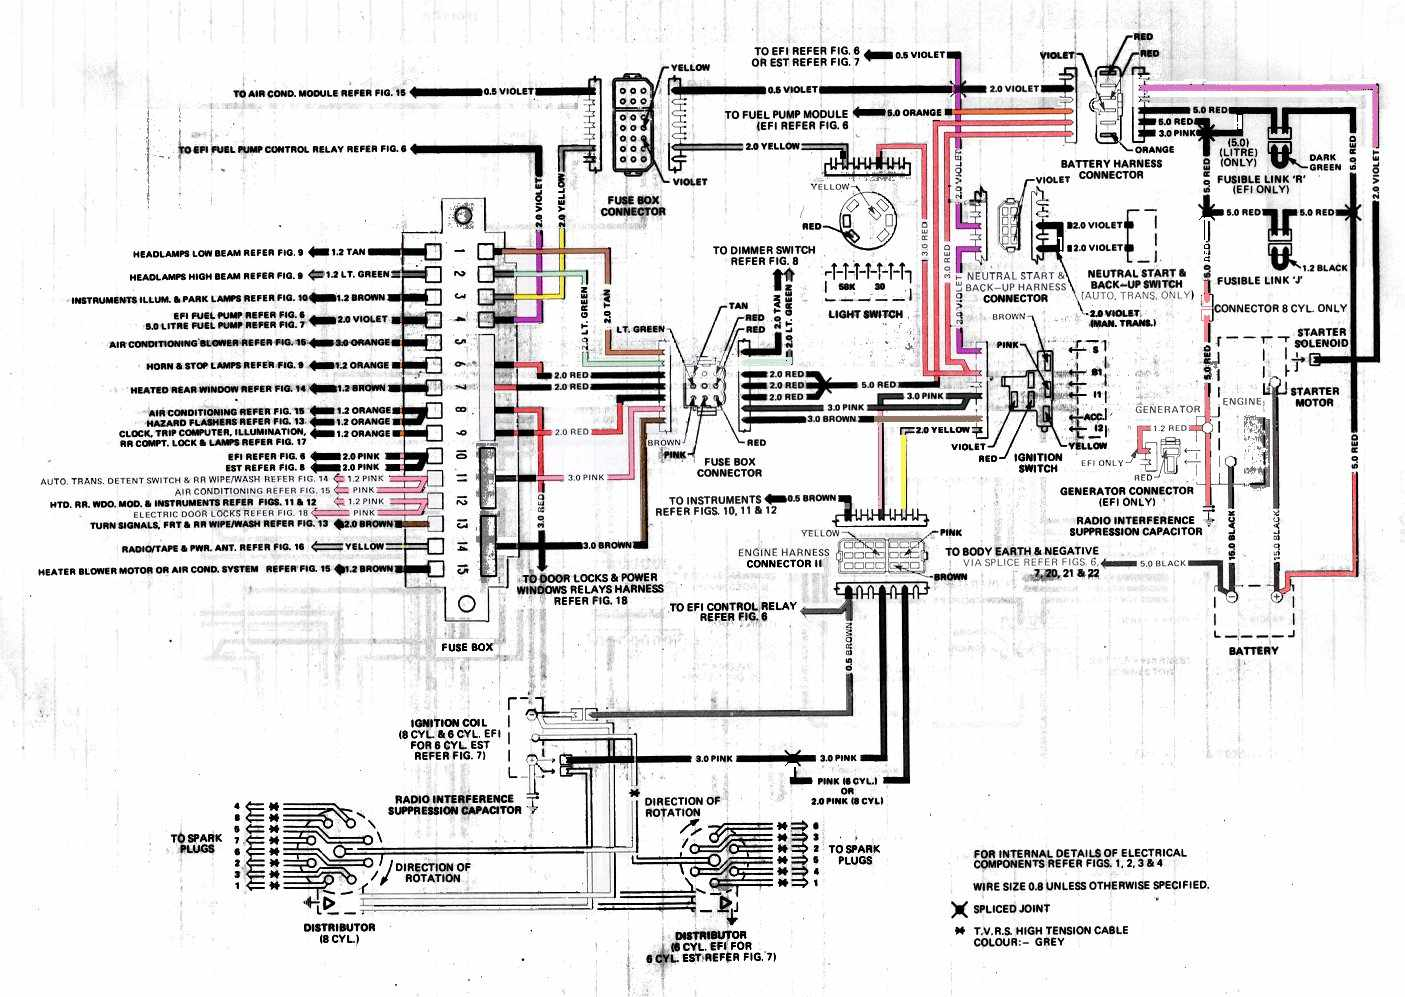 lima generator wiring diagram wiring diagram for starter generator the wiring diagram wiring diagram creator wiring wiring diagrams for car